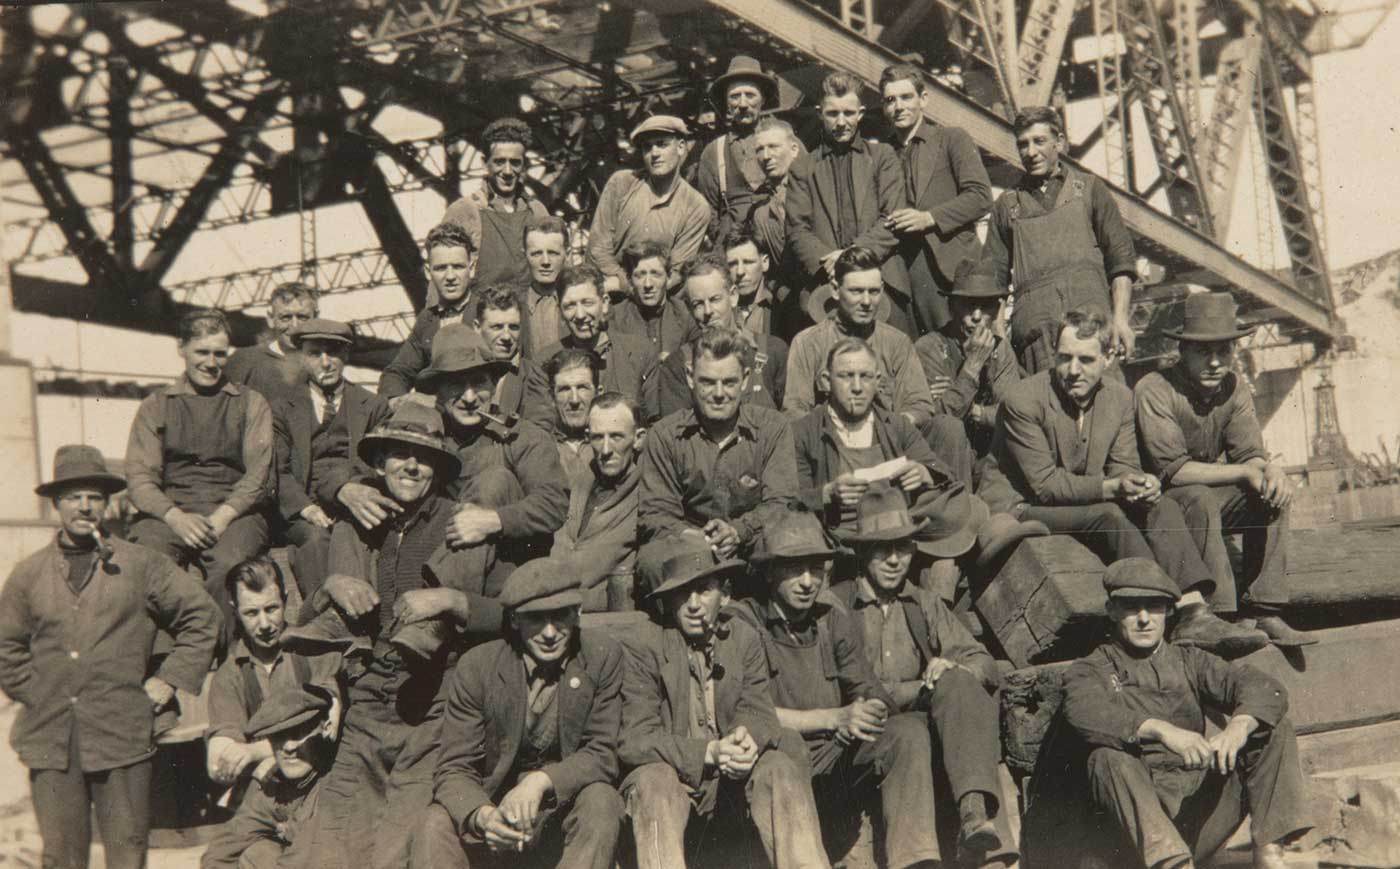 A group photograph of workers sitting under a large steel construction. Several smoke pipes and most wear overalls and hats. - click to view larger image